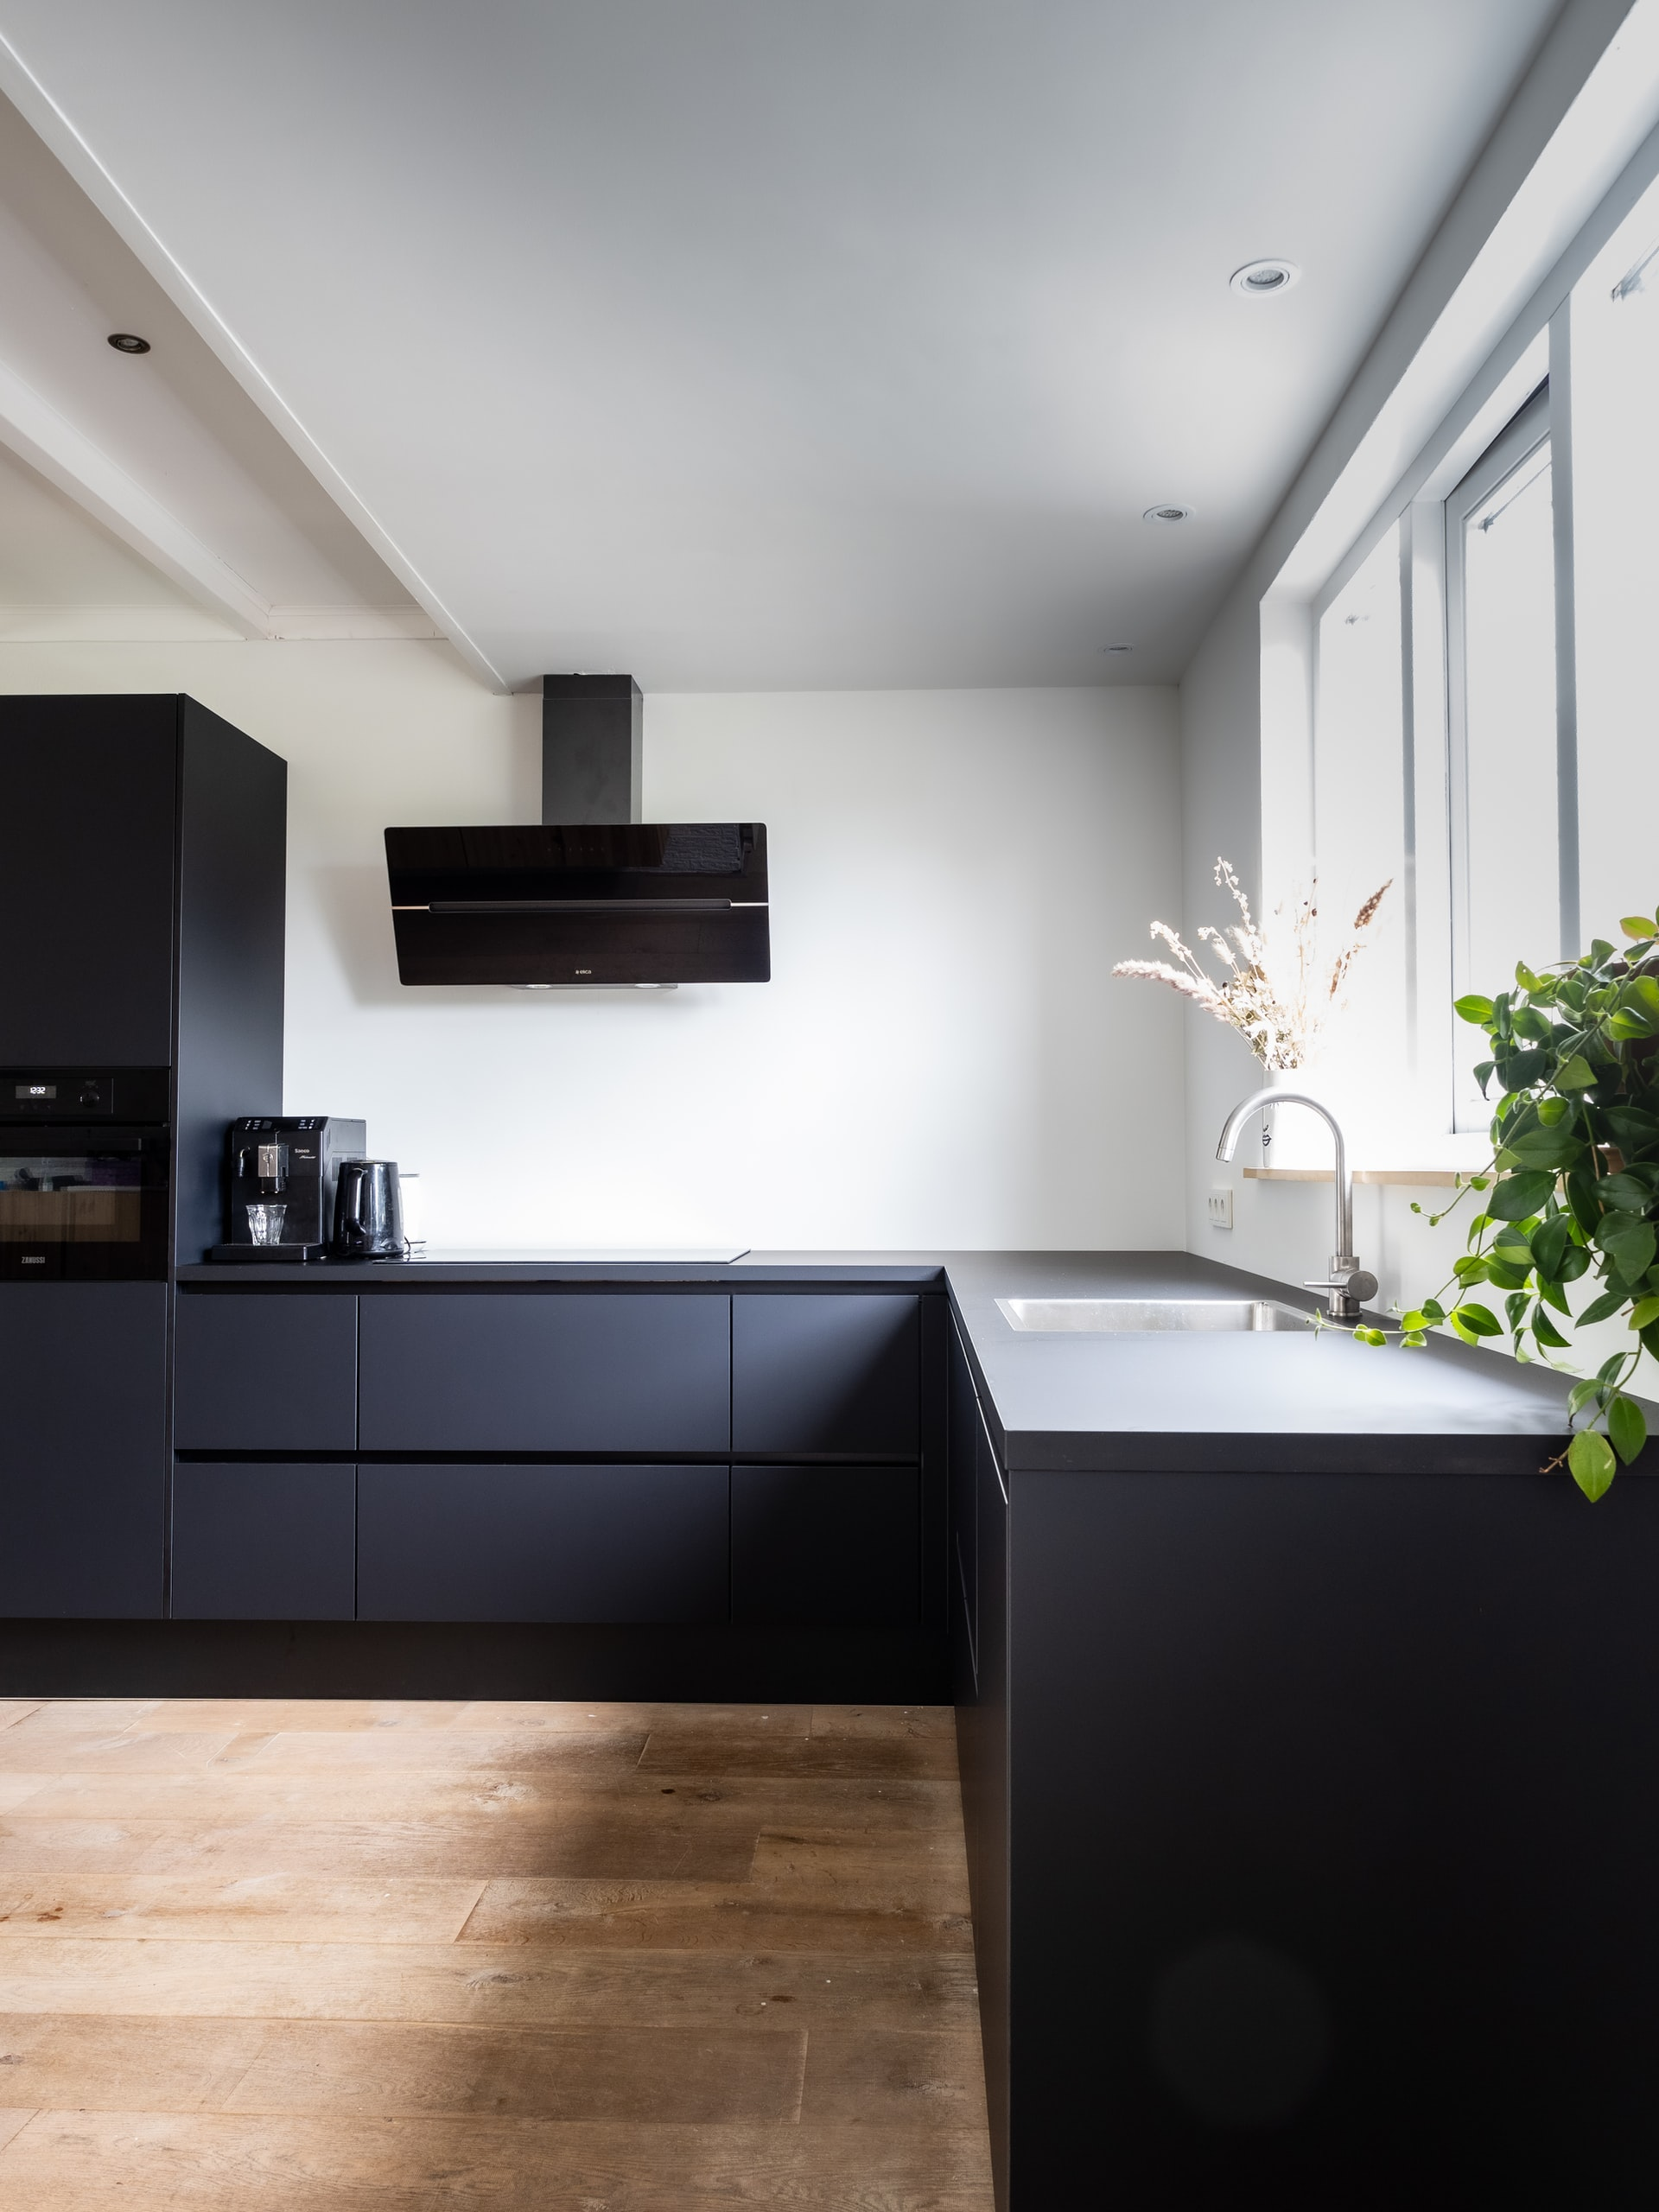 Kitchen Remodel Tips Article Image